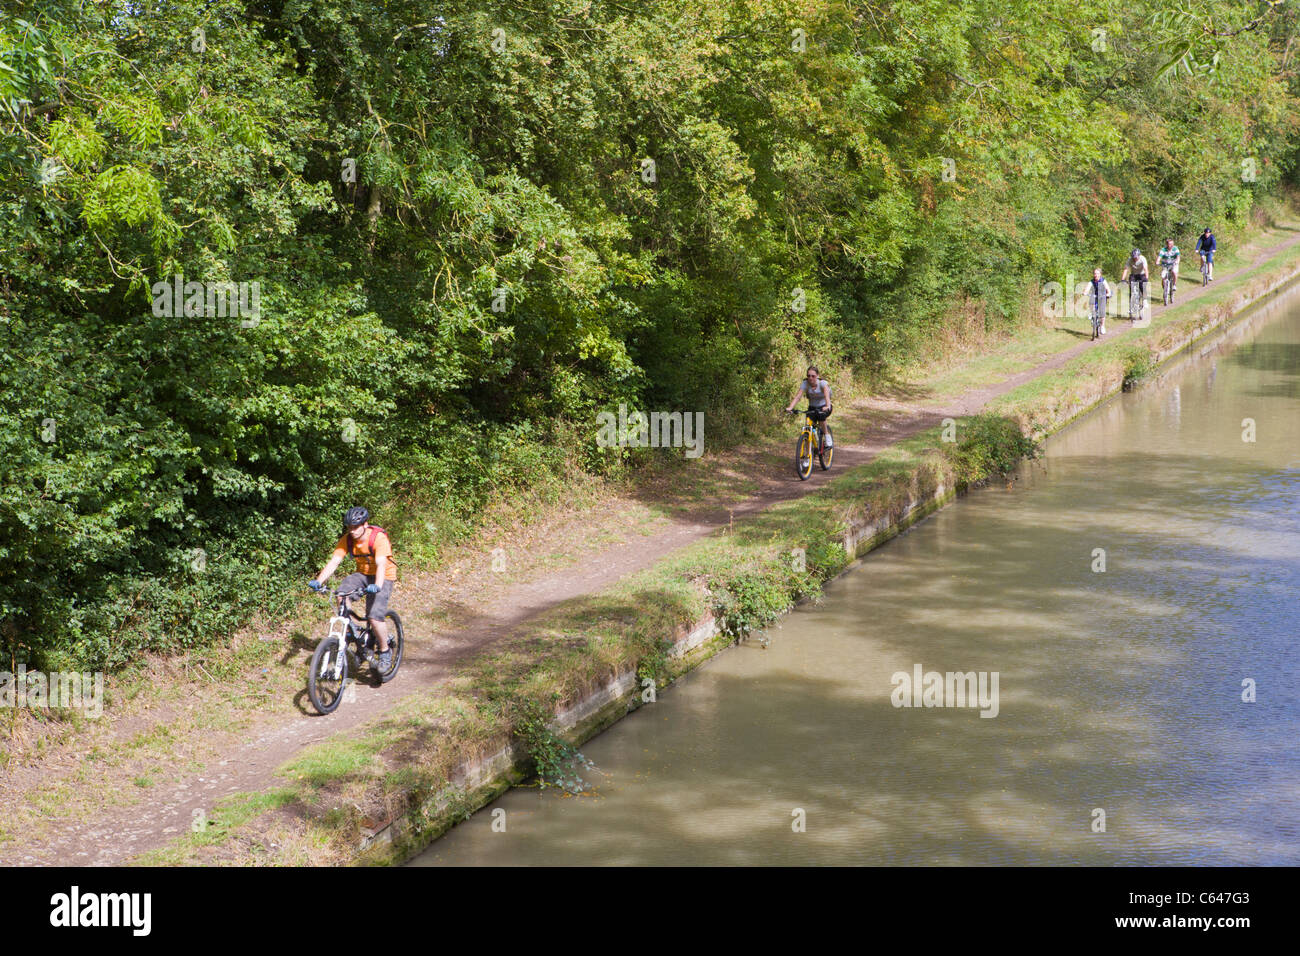 Cyclists riding along the towpath of the Grand Union Canal, Warwickshire, England. - Stock Image